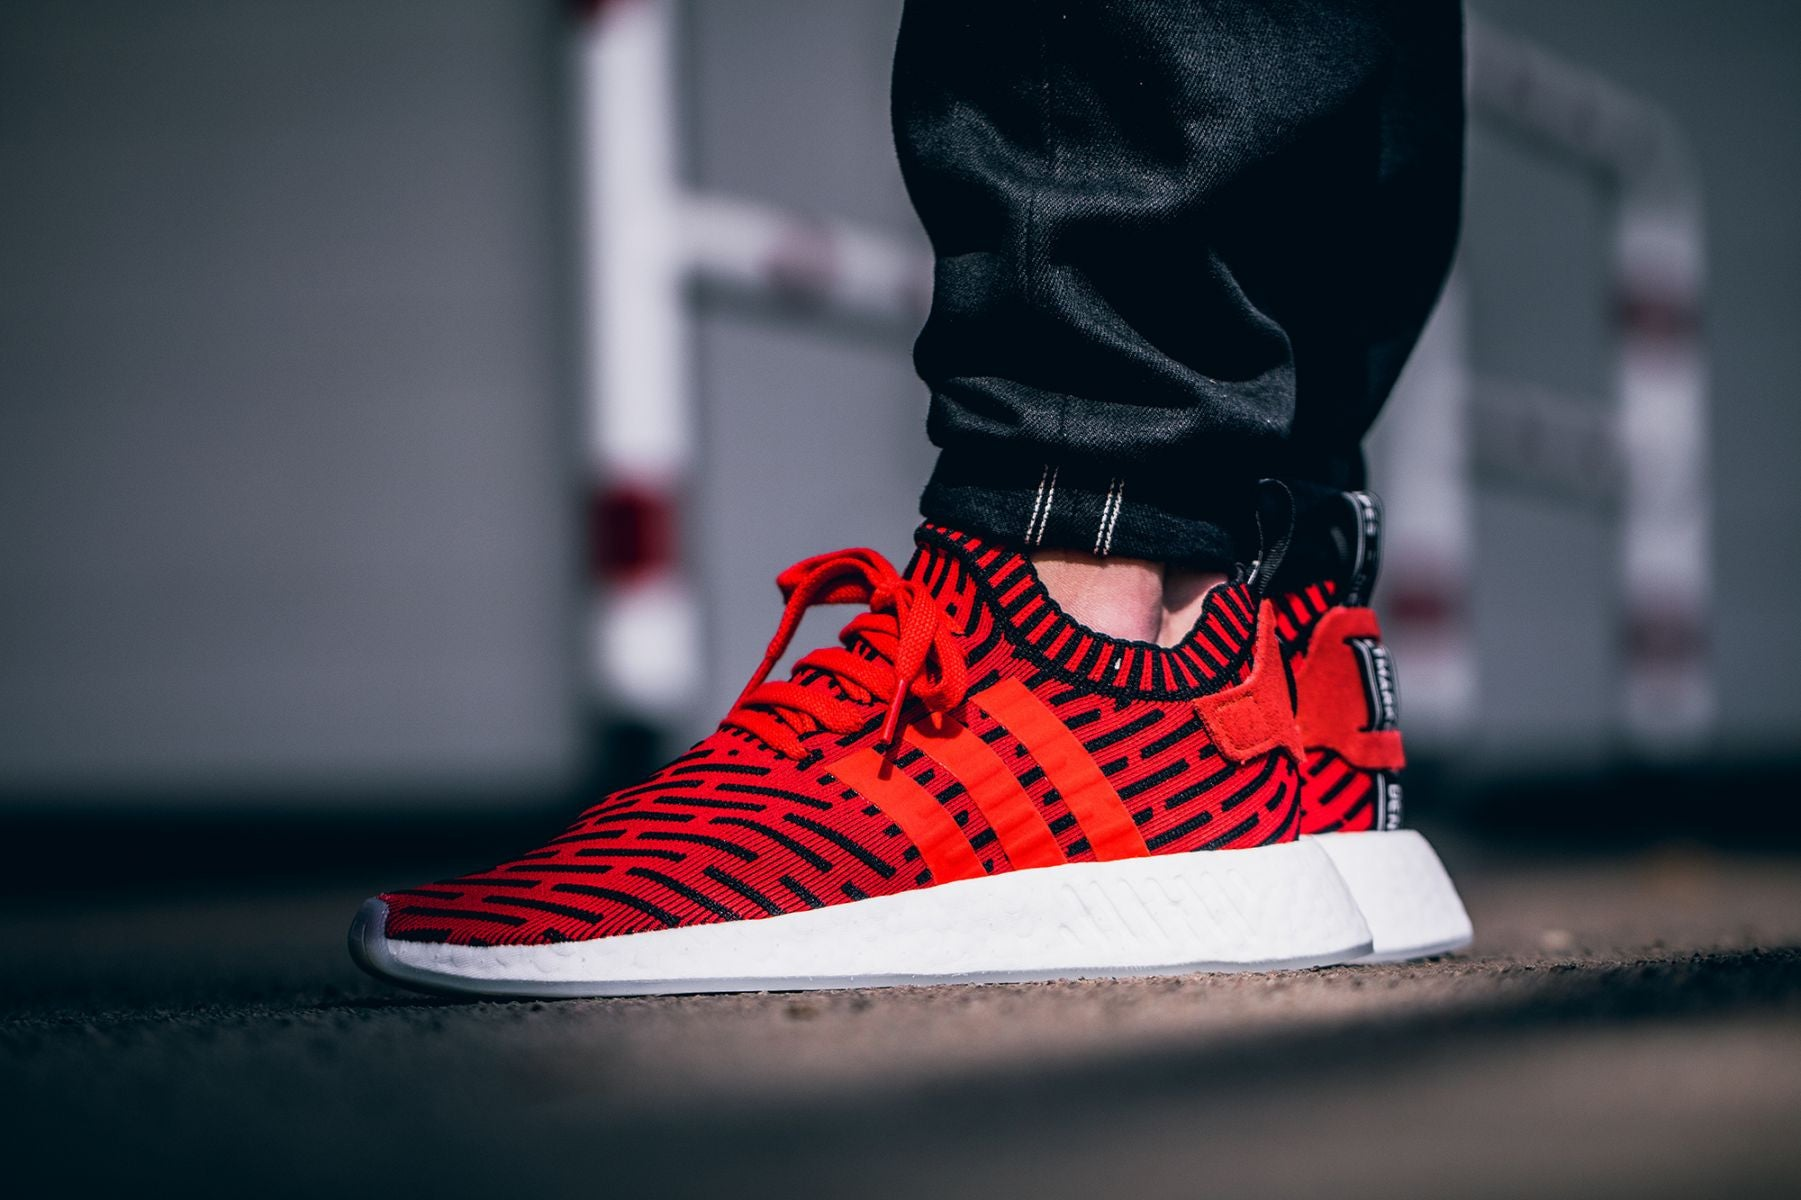 fba2fbf90087 adidas nmd r2 primeknit white core red on feet